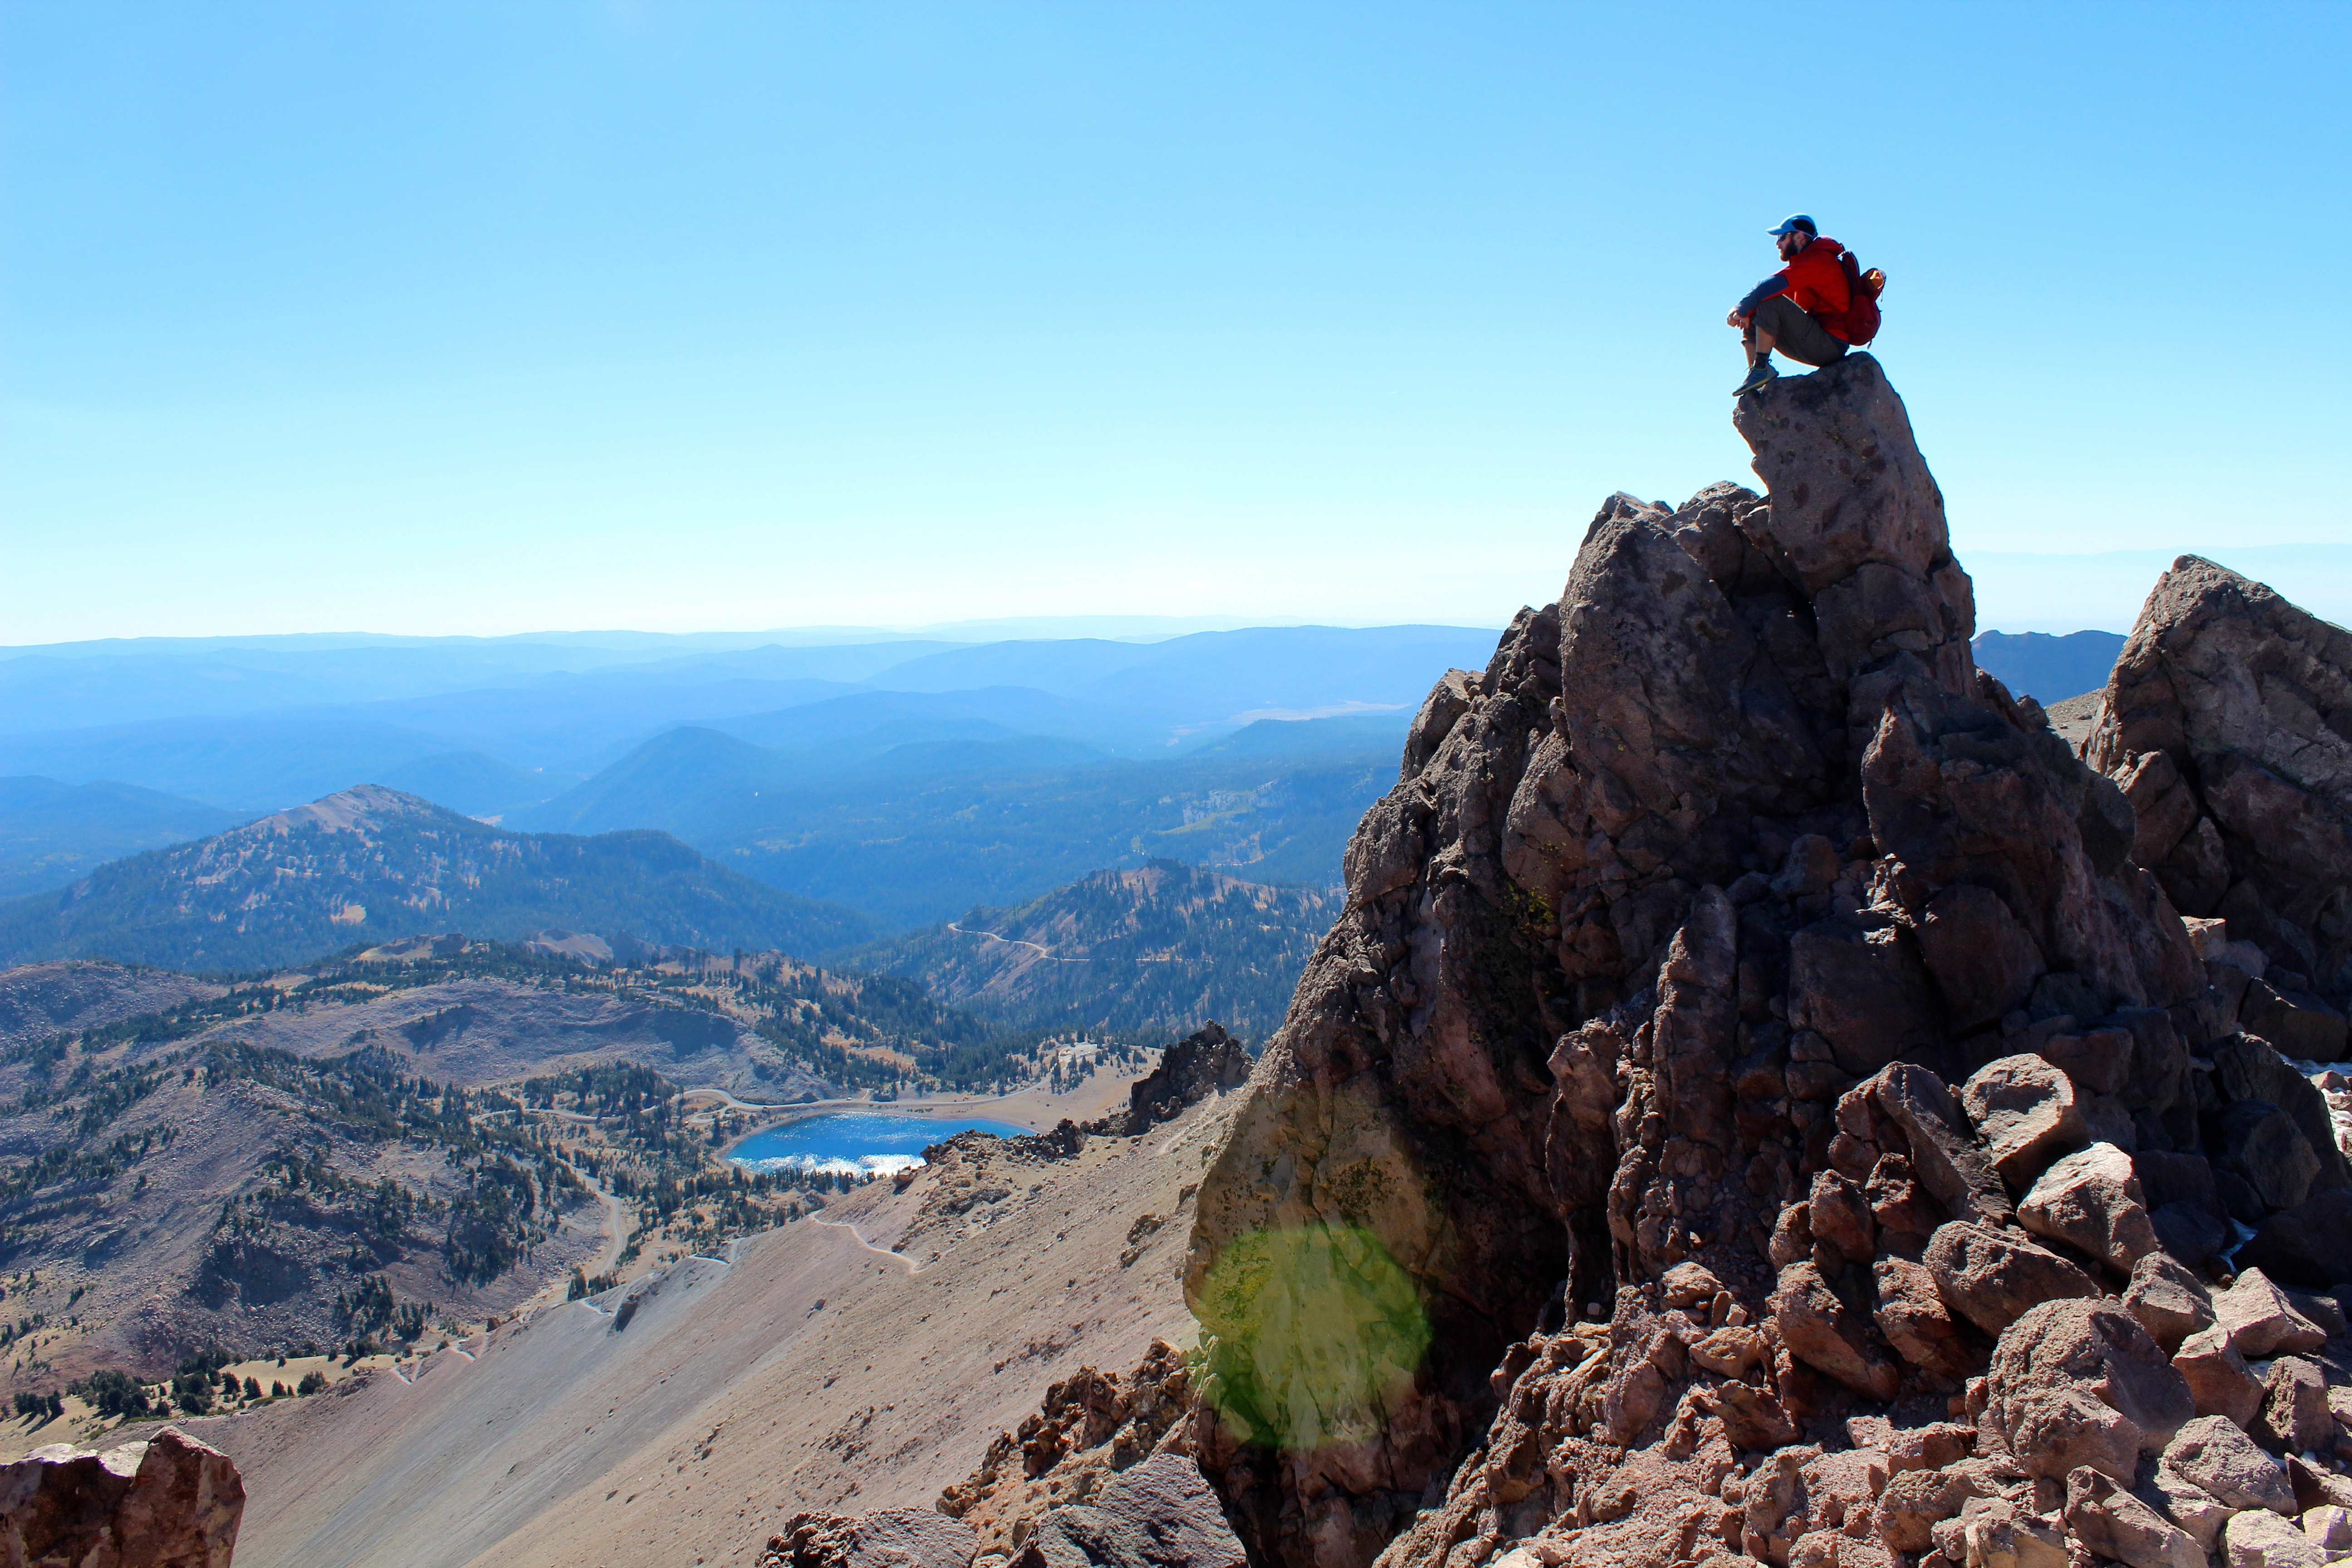 Lassen Volcanic National Park: Everything to Love About a Big Park, Without the Crowds